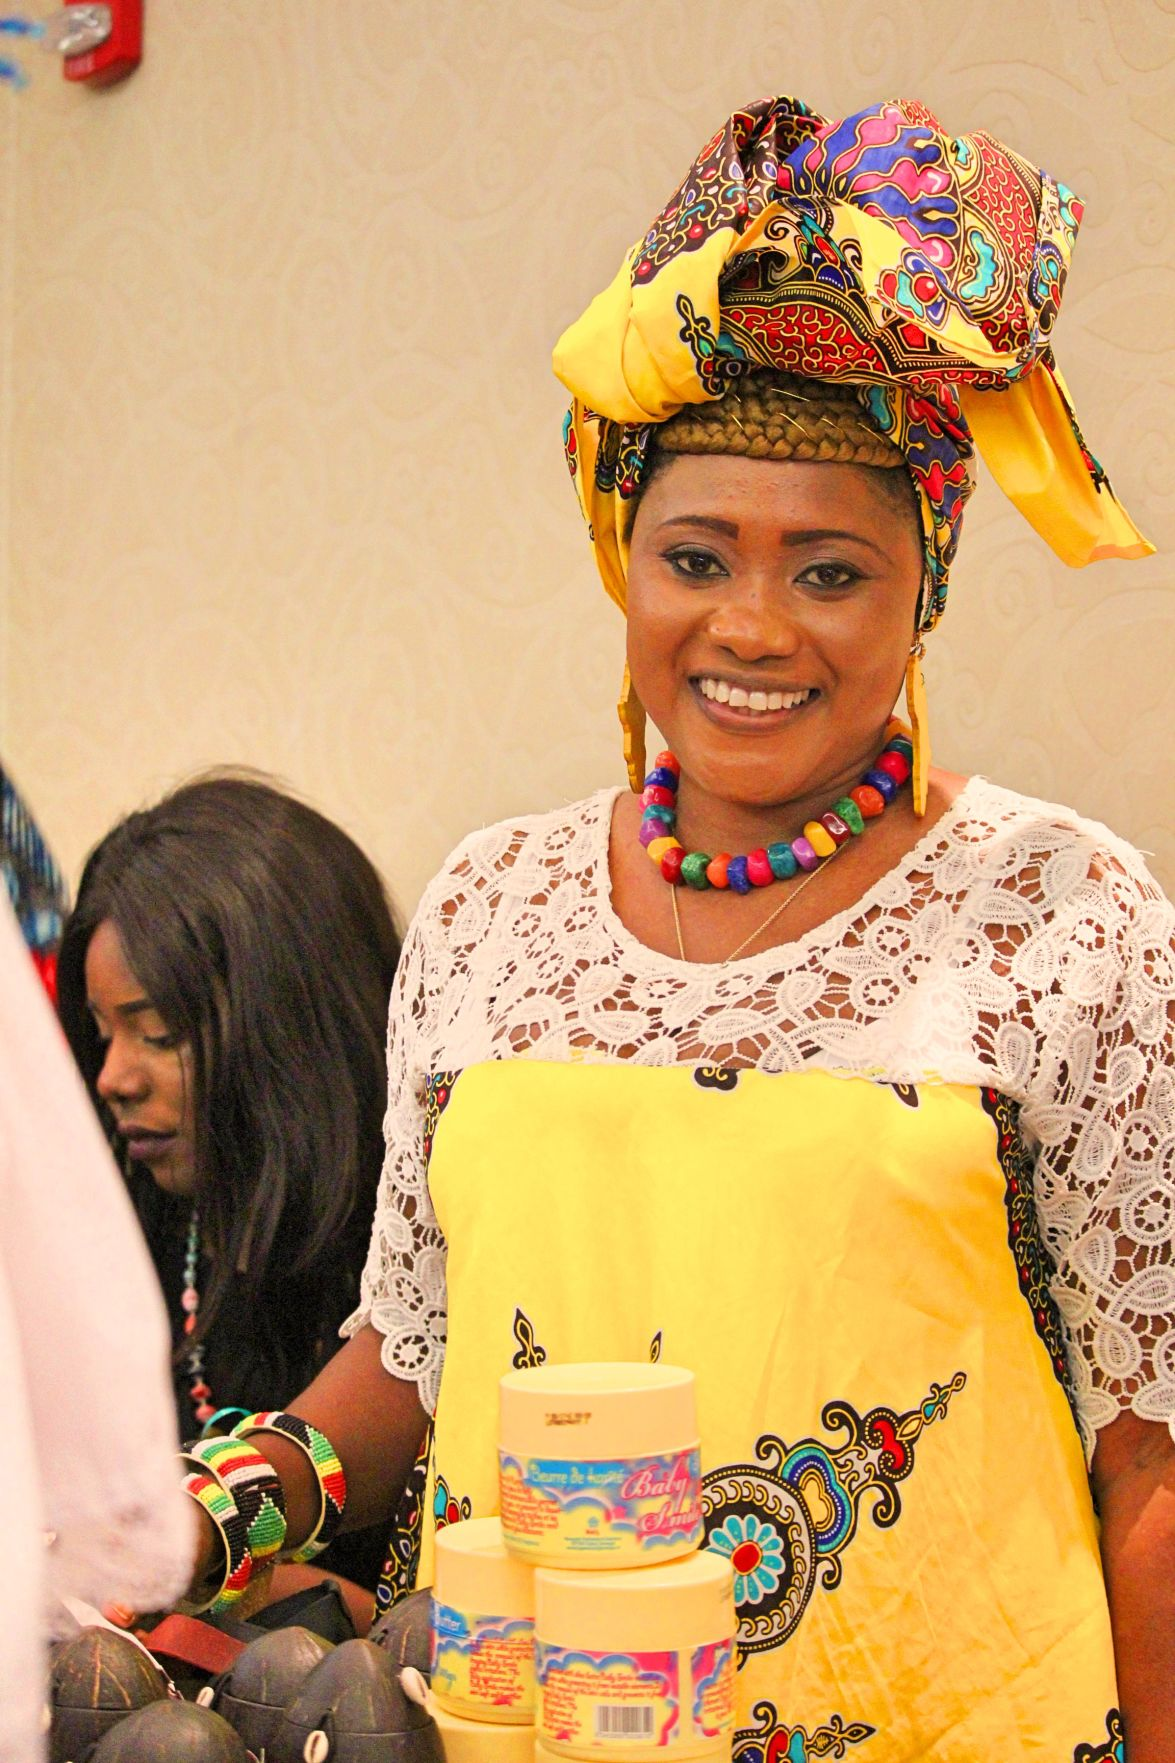 Local group set to hold annual 'Taste of Africa' event